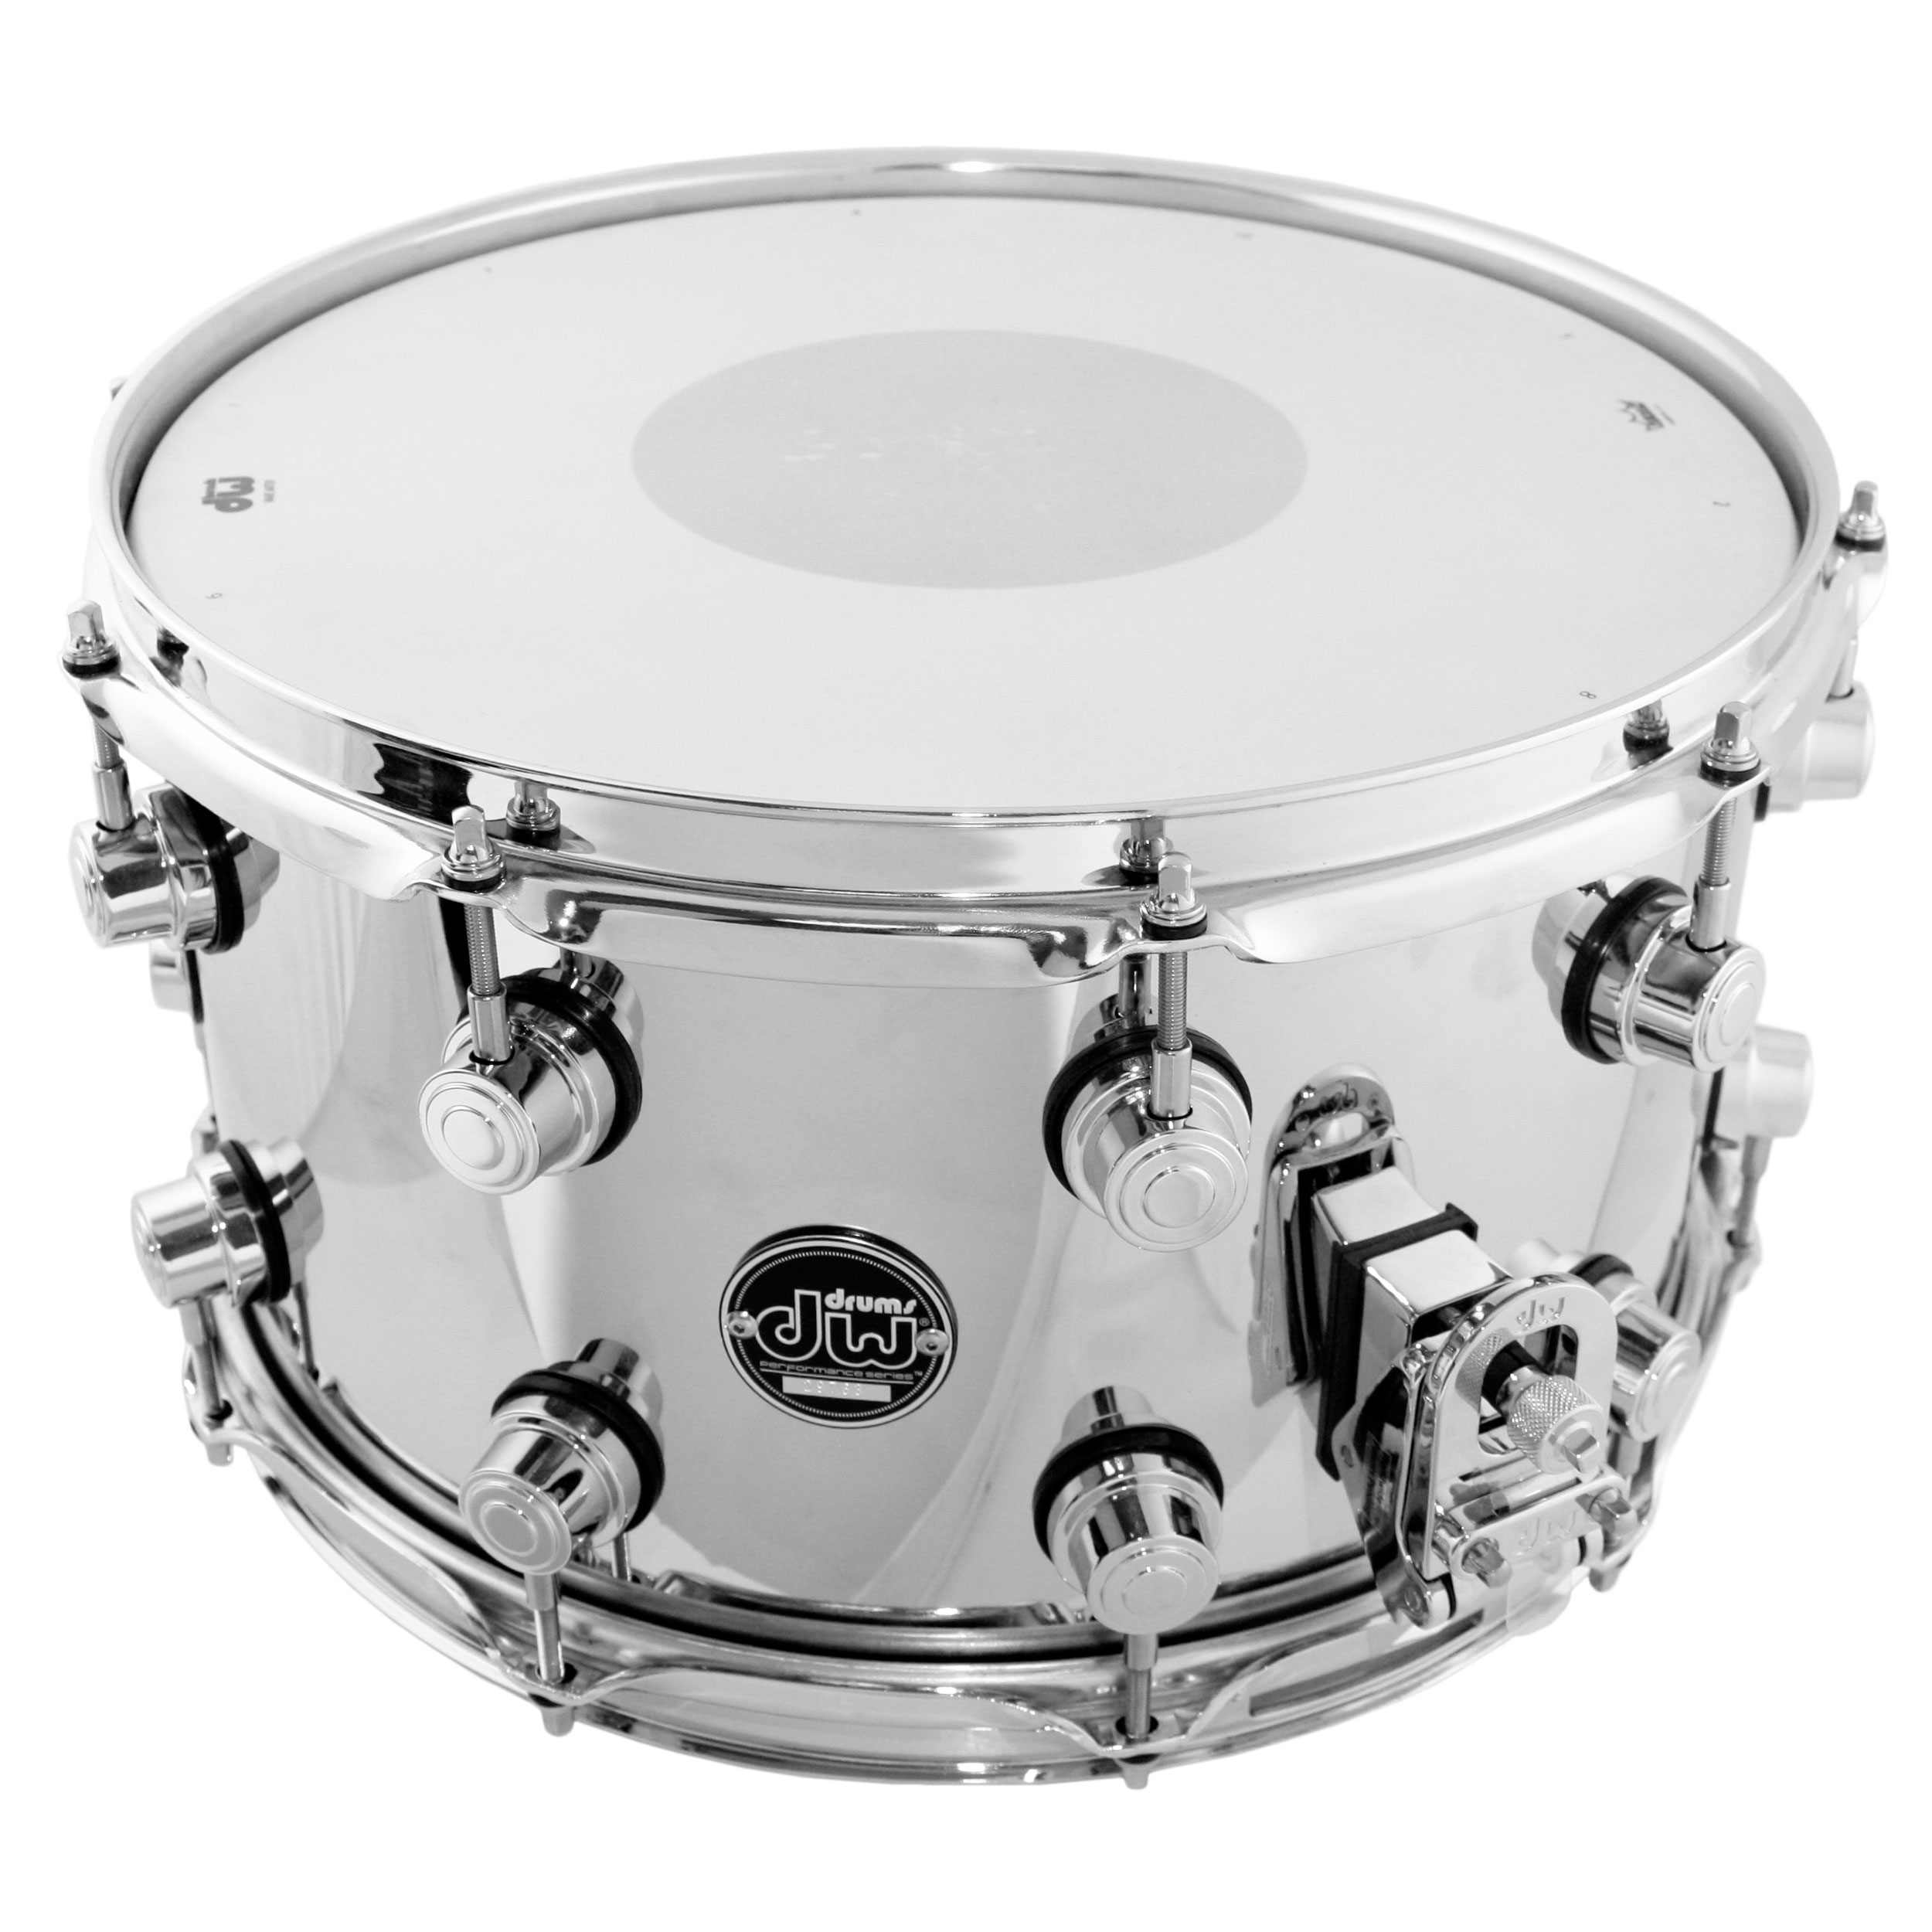 "DW 8"" x 14"" Performance Series Chrome Over Steel Snare Drum"